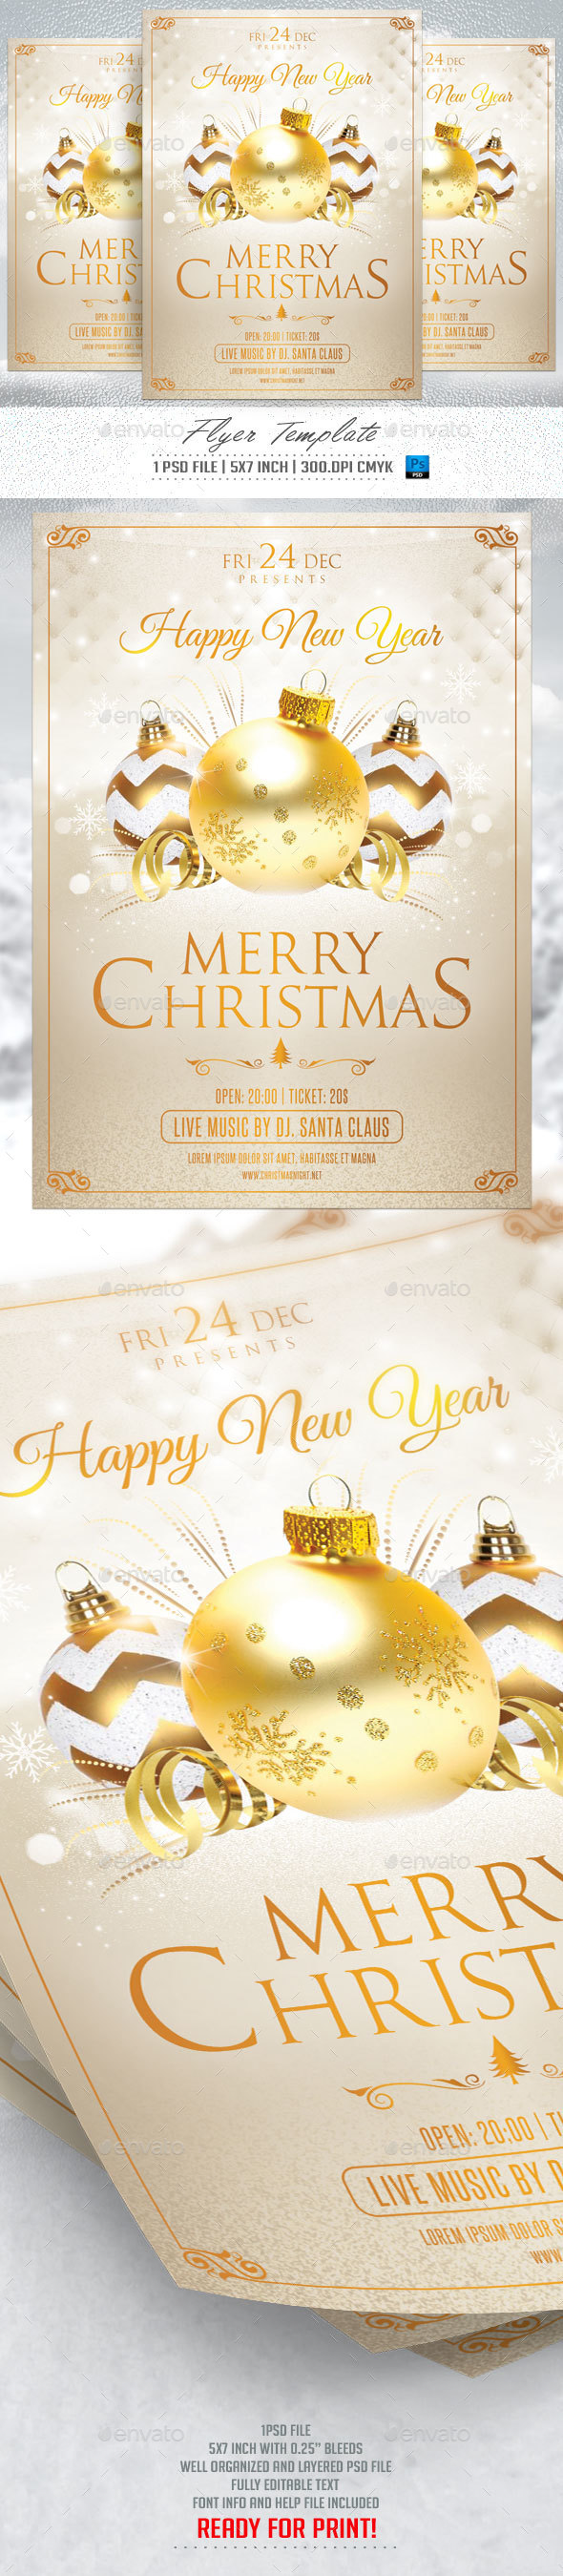 Merry Christmas Flyer Template v.3 - Flyers Print Templates